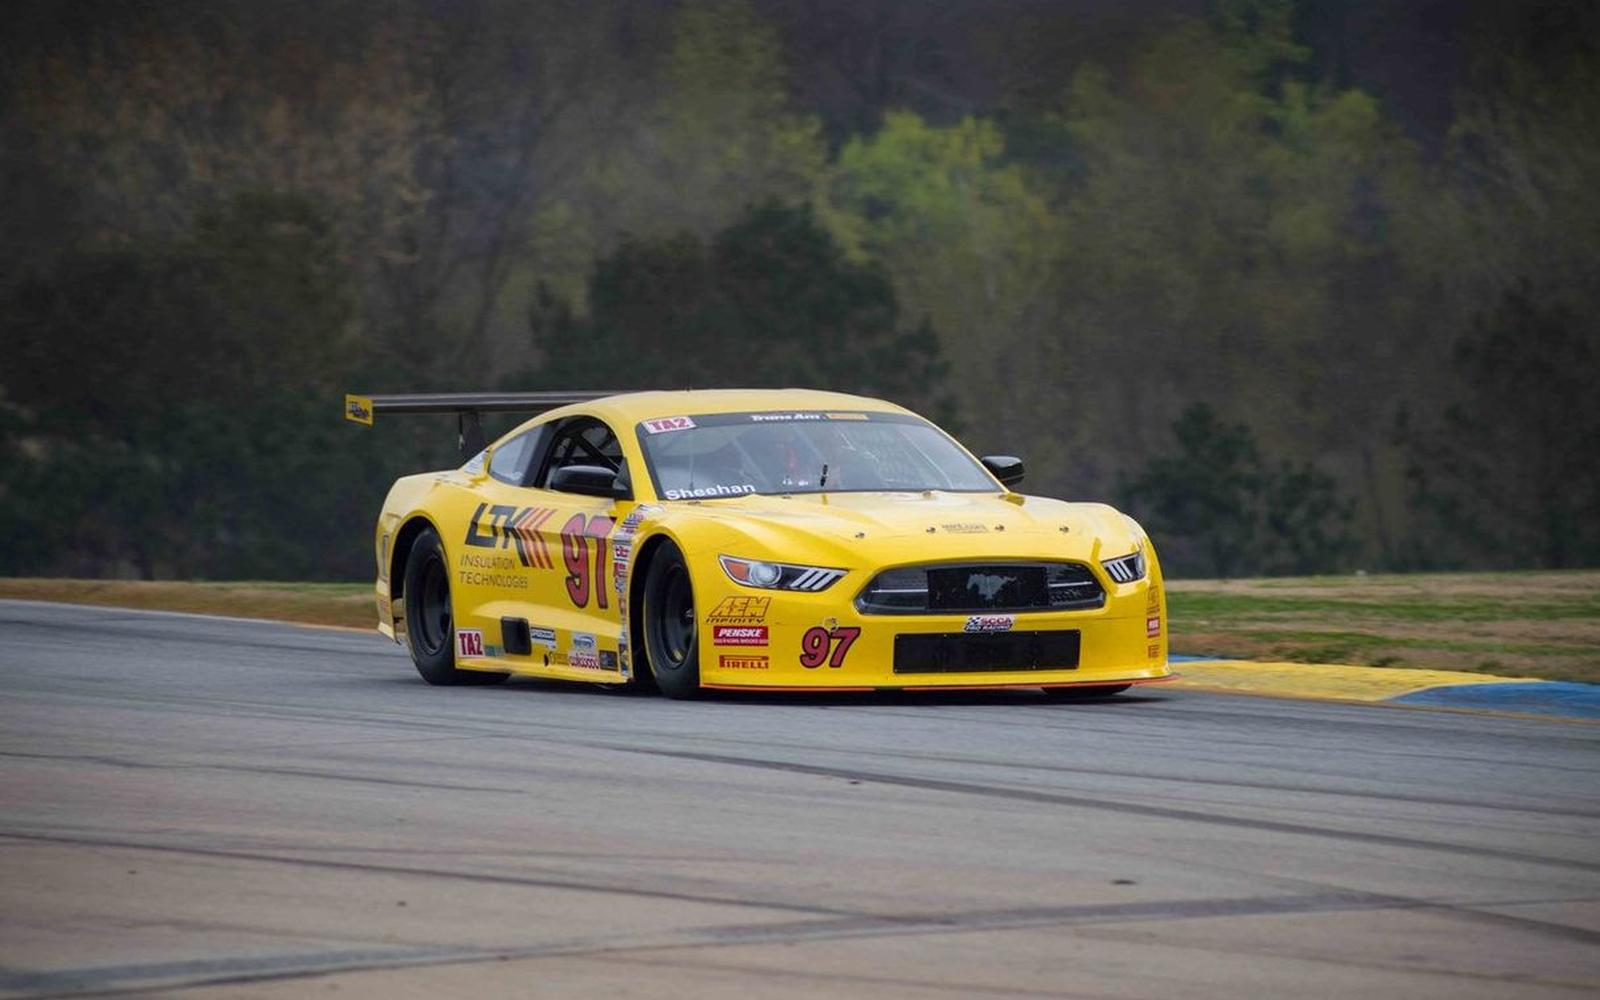 Sheehan Takes Positives After Frustrating Finish at Michelin Raceway Road Atlanta